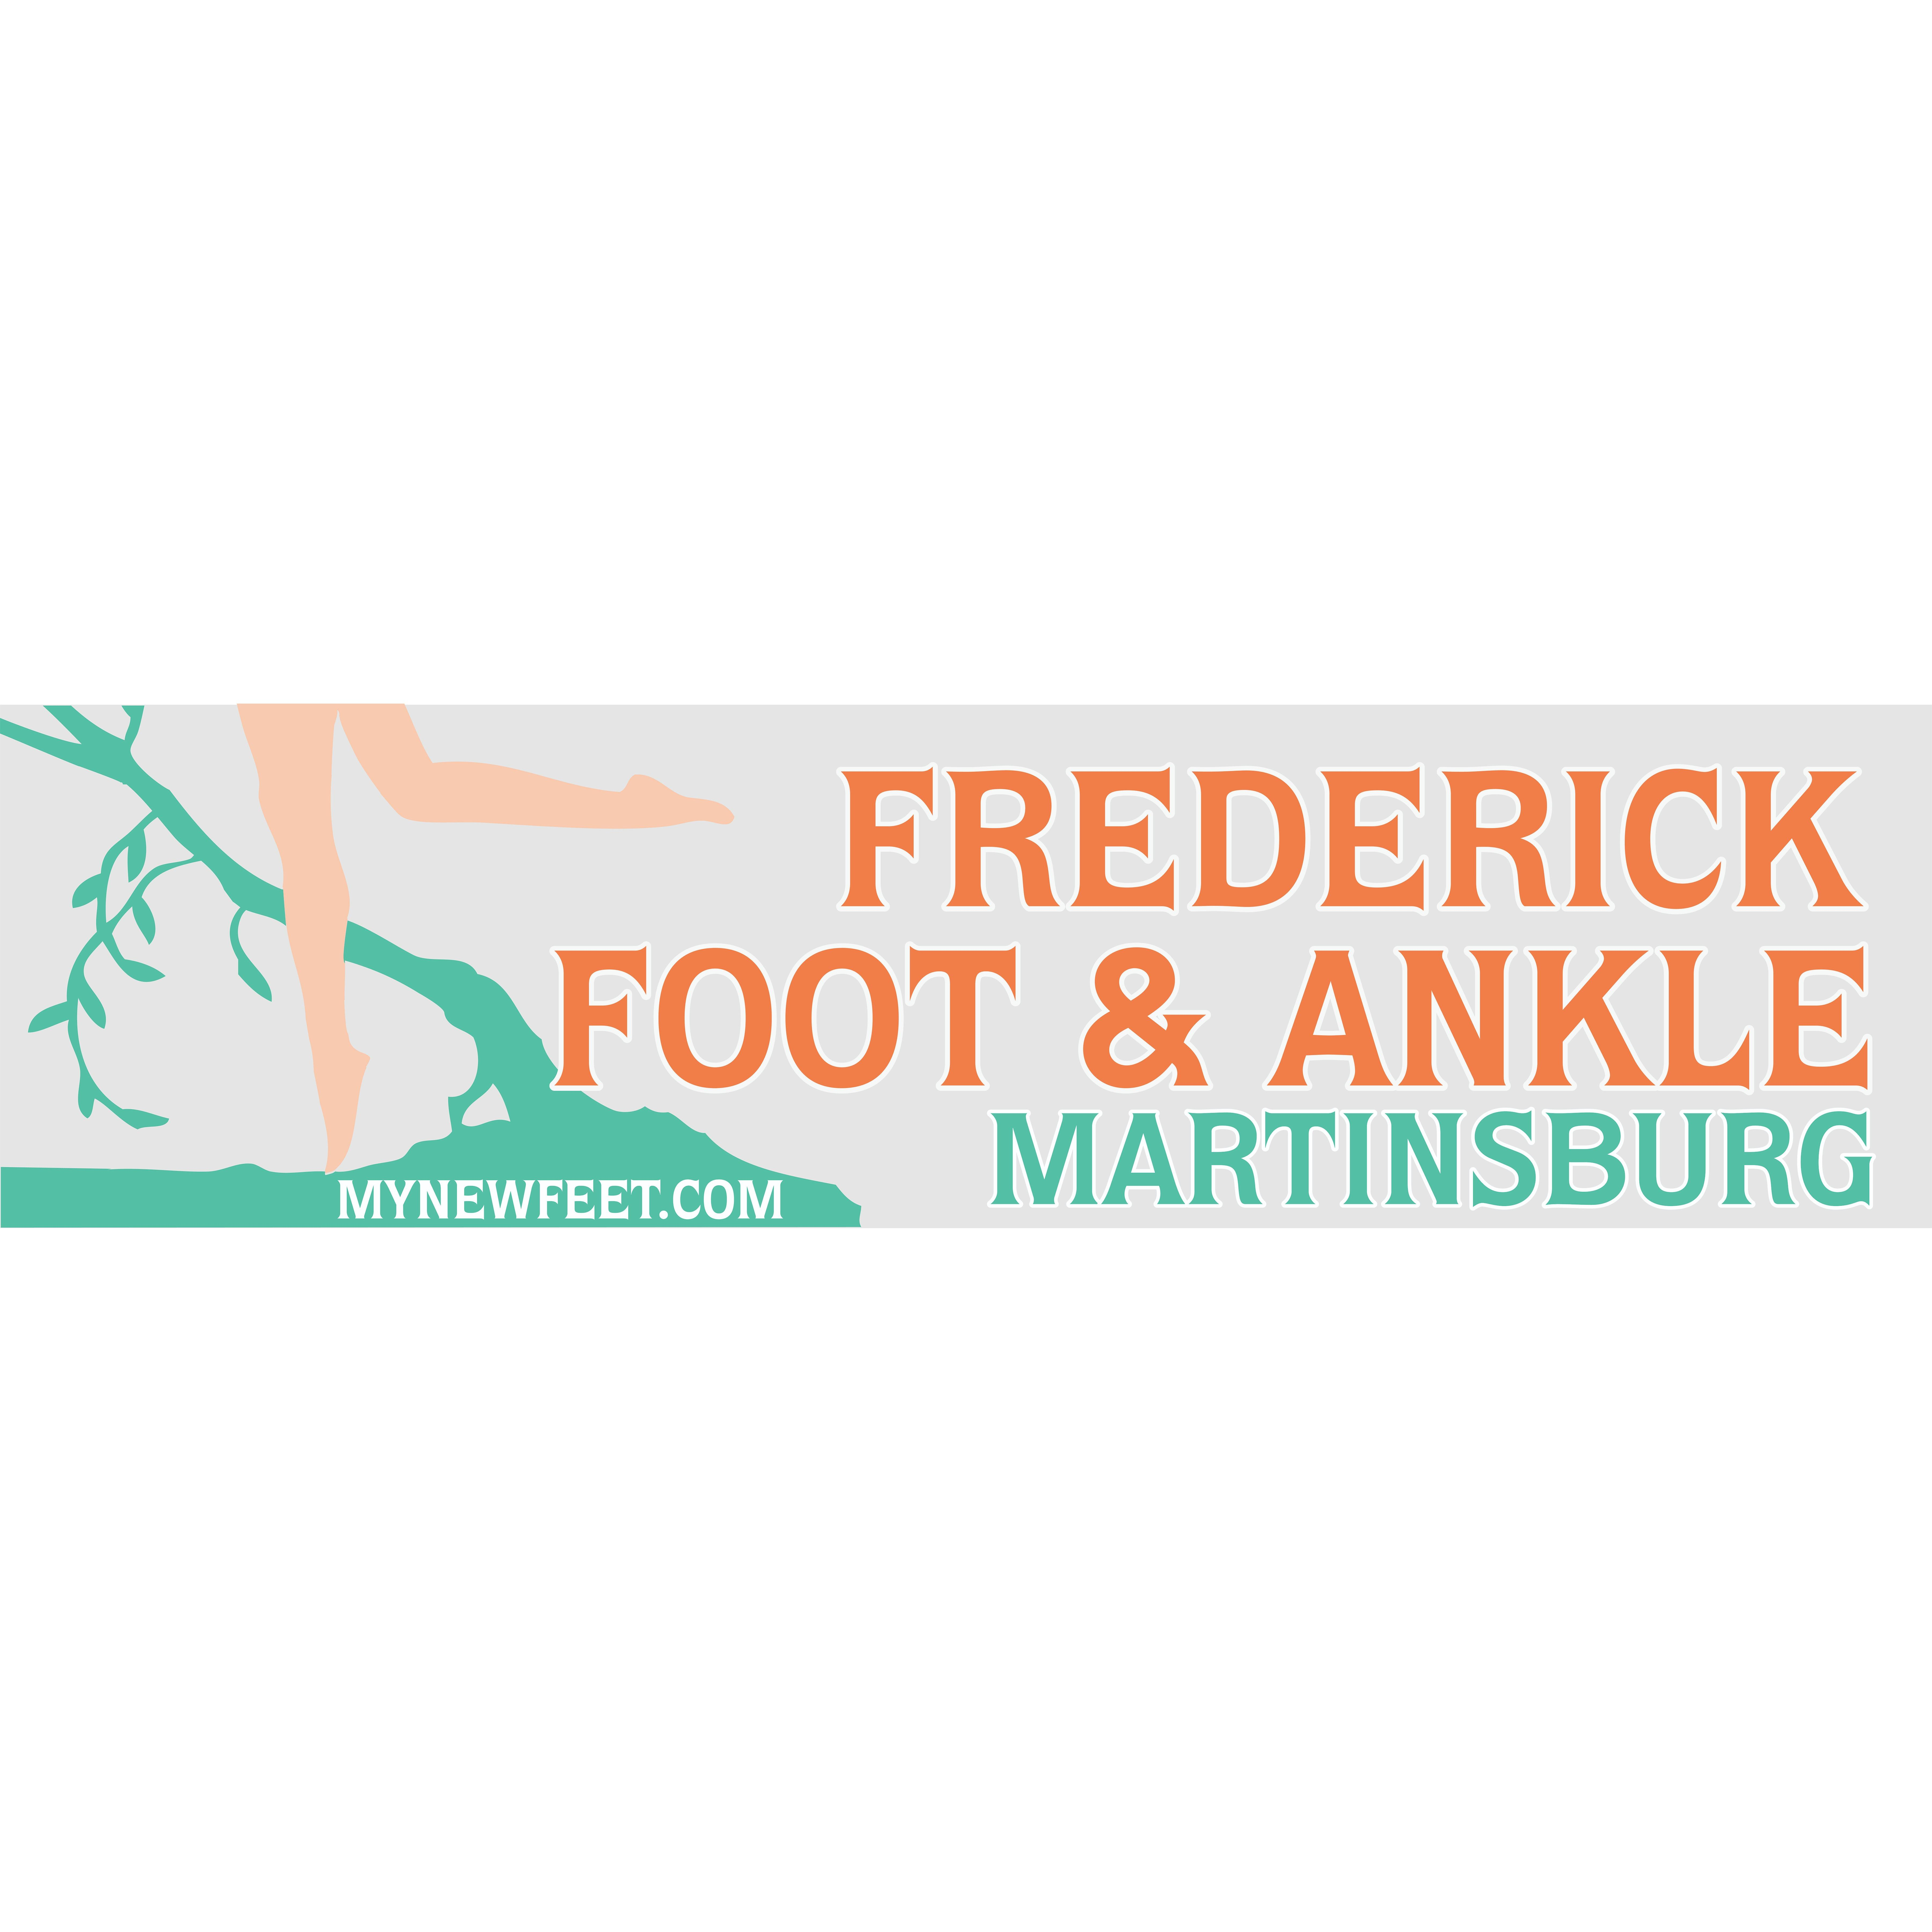 Frederick Foot and Ankle Martinsburg - Martinsburg, WV 25401 - (304)267-5544 | ShowMeLocal.com